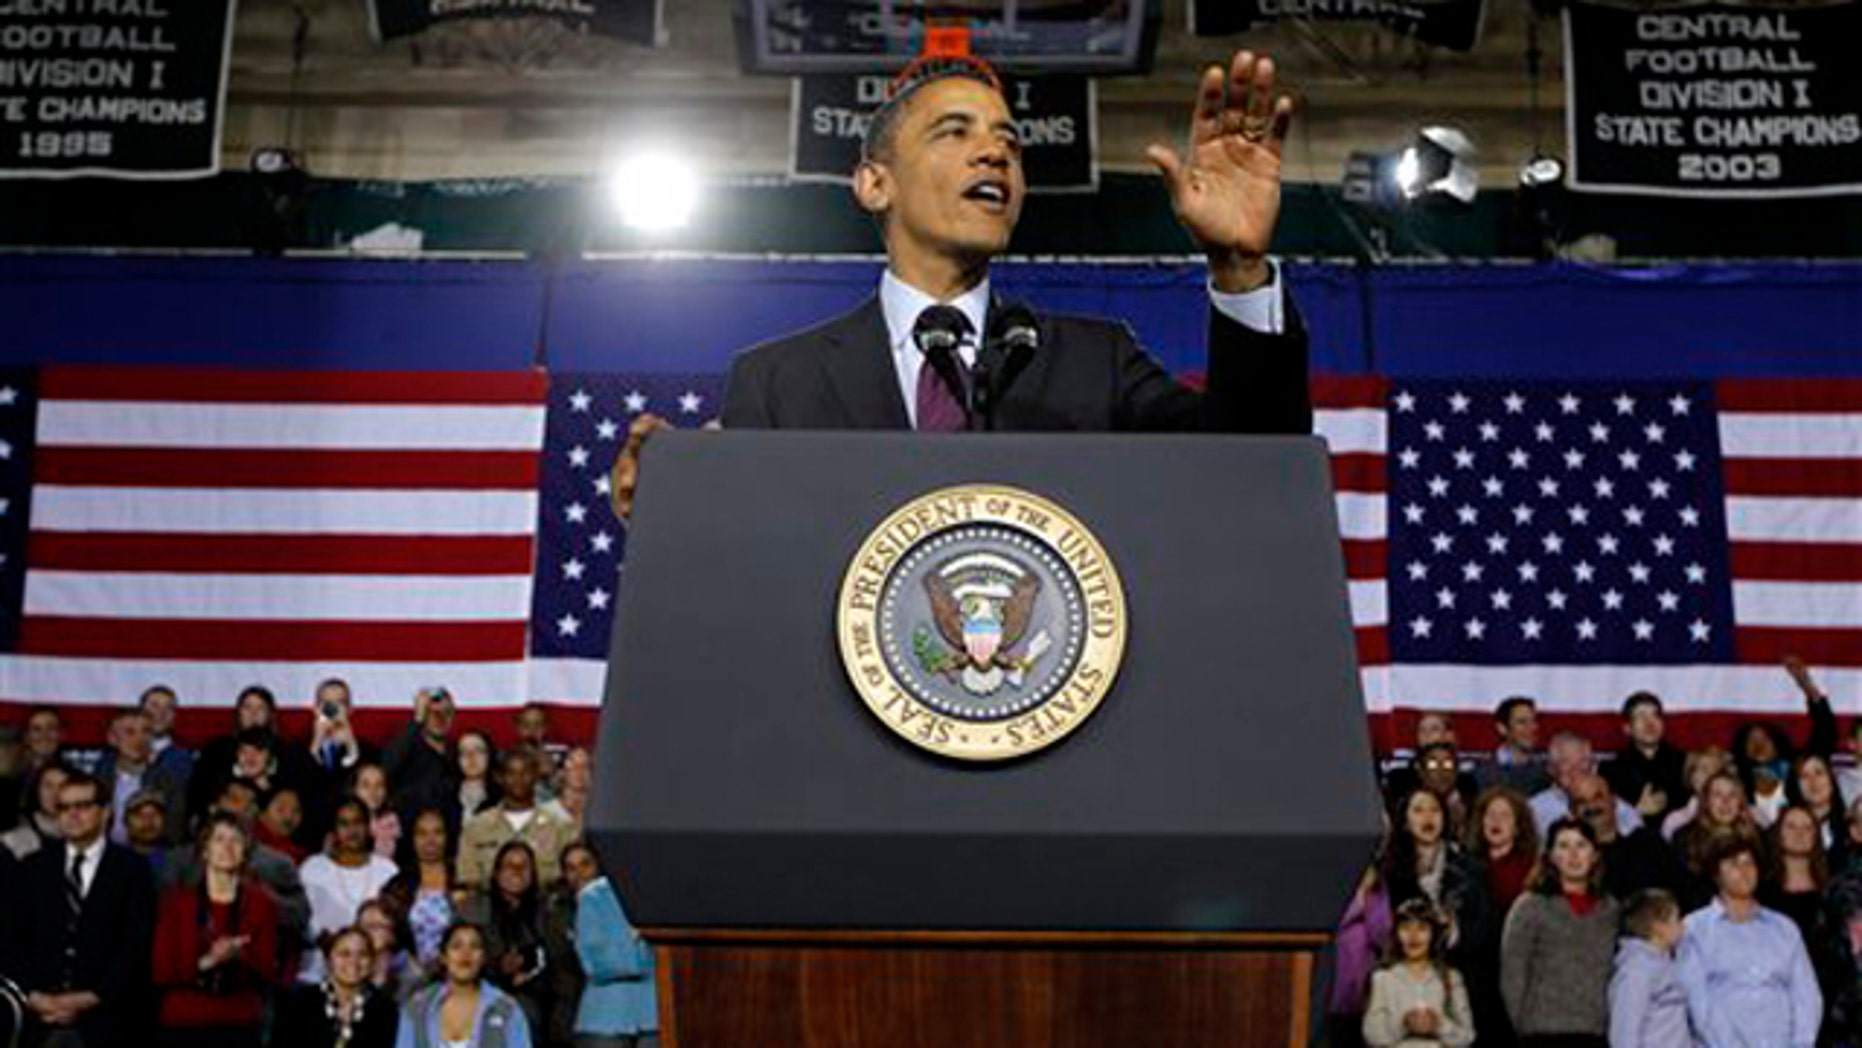 Nov. 22, 2011: President Obama gestures during a speech at Manchester High School Central in Manchester, N.H.